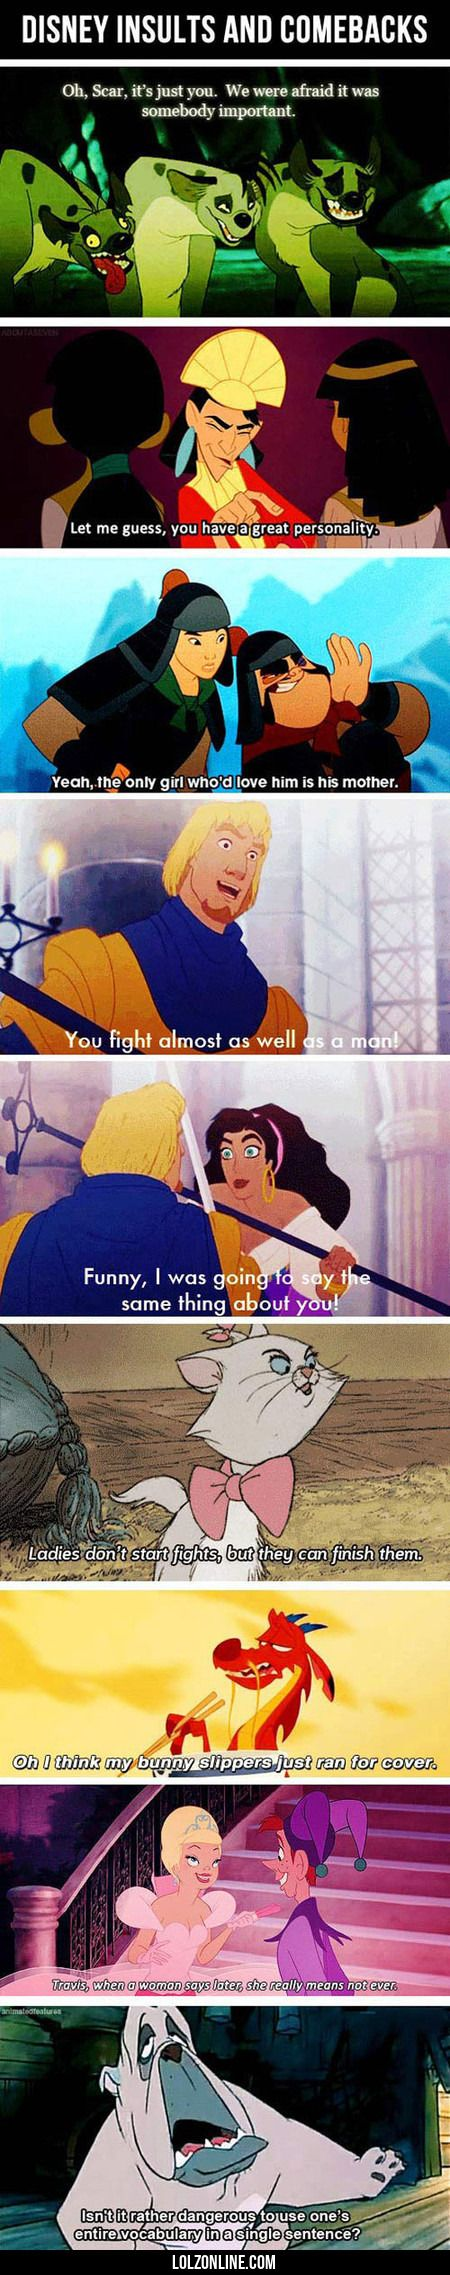 Disney Insults And Comebacks#funny #lol #lolzonline